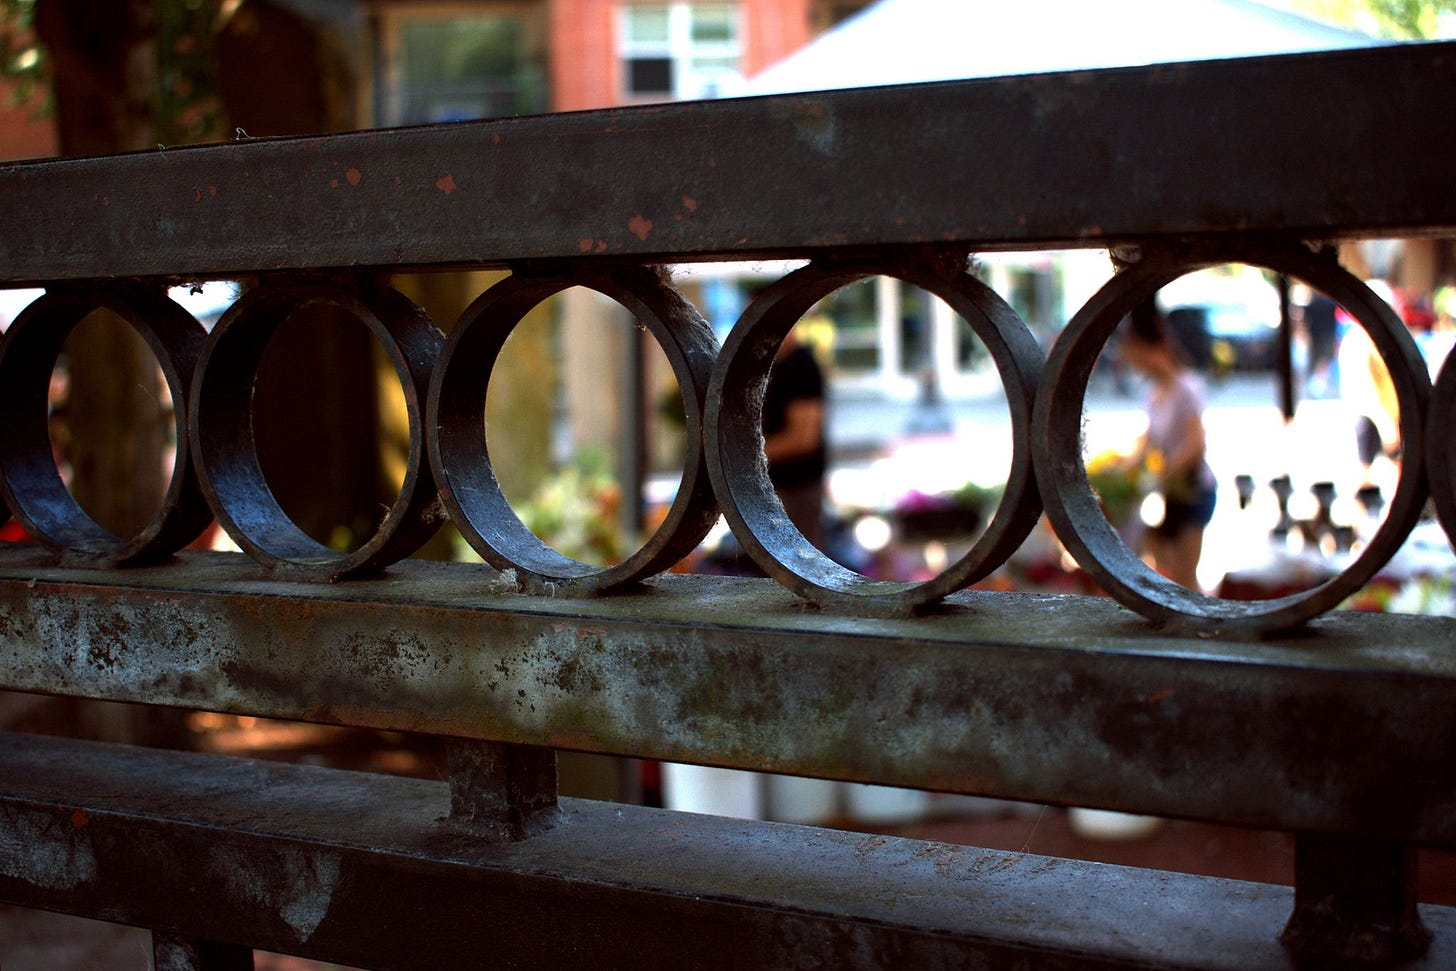 Photograph of an old gate, through which we see people at Vancouver Farmer's Market buying colorful flowers.